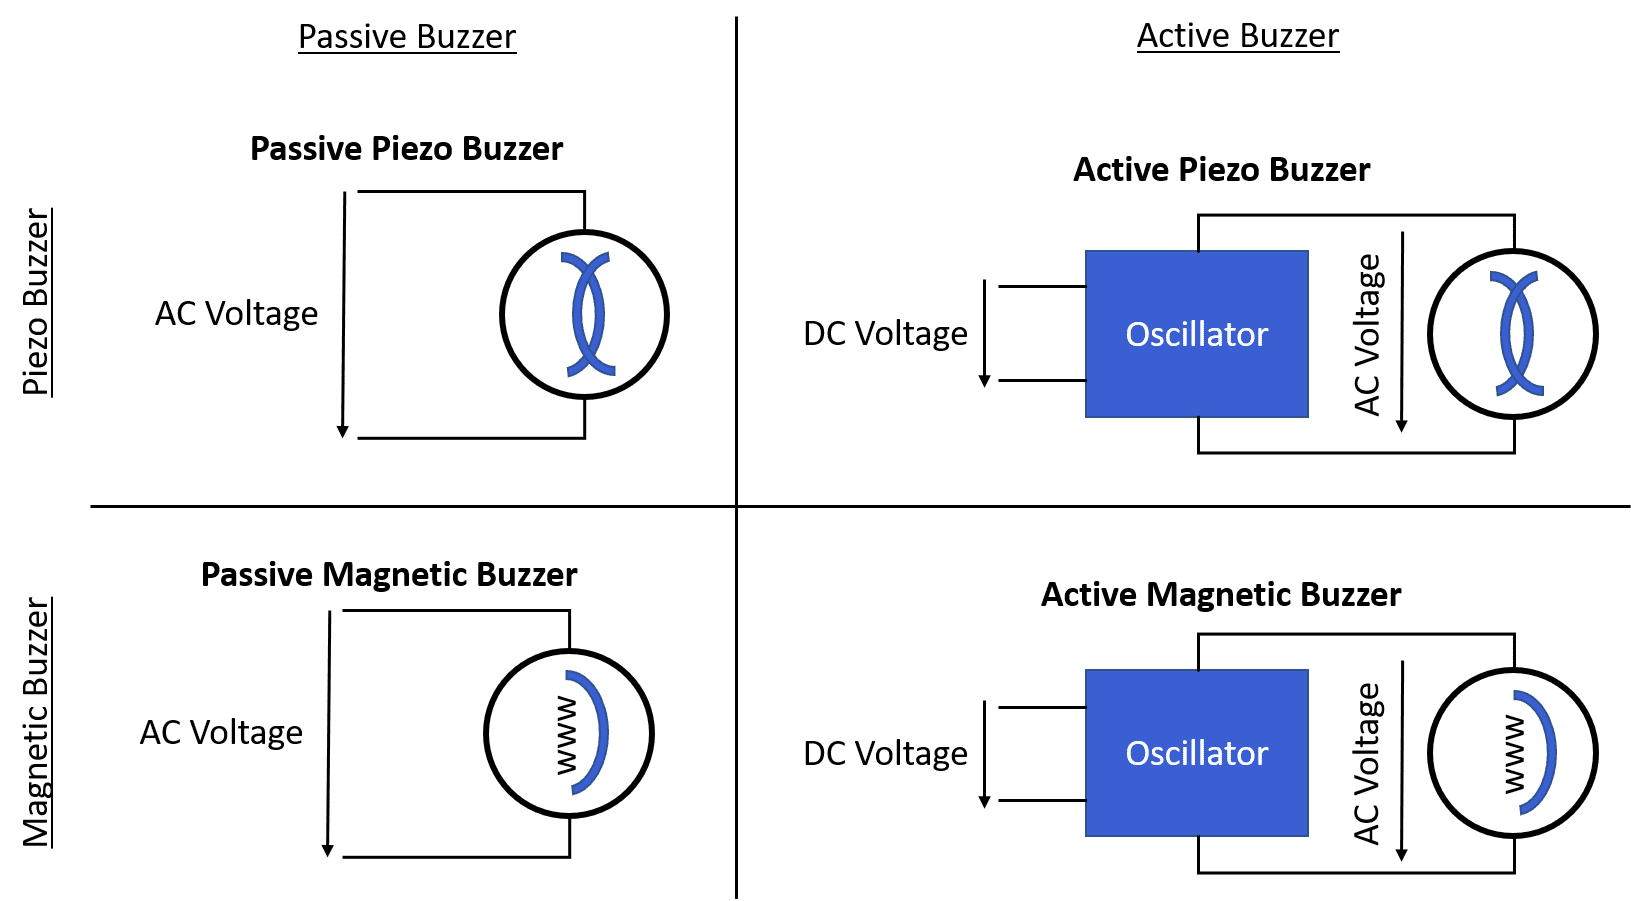 Overview of different types of buzzers